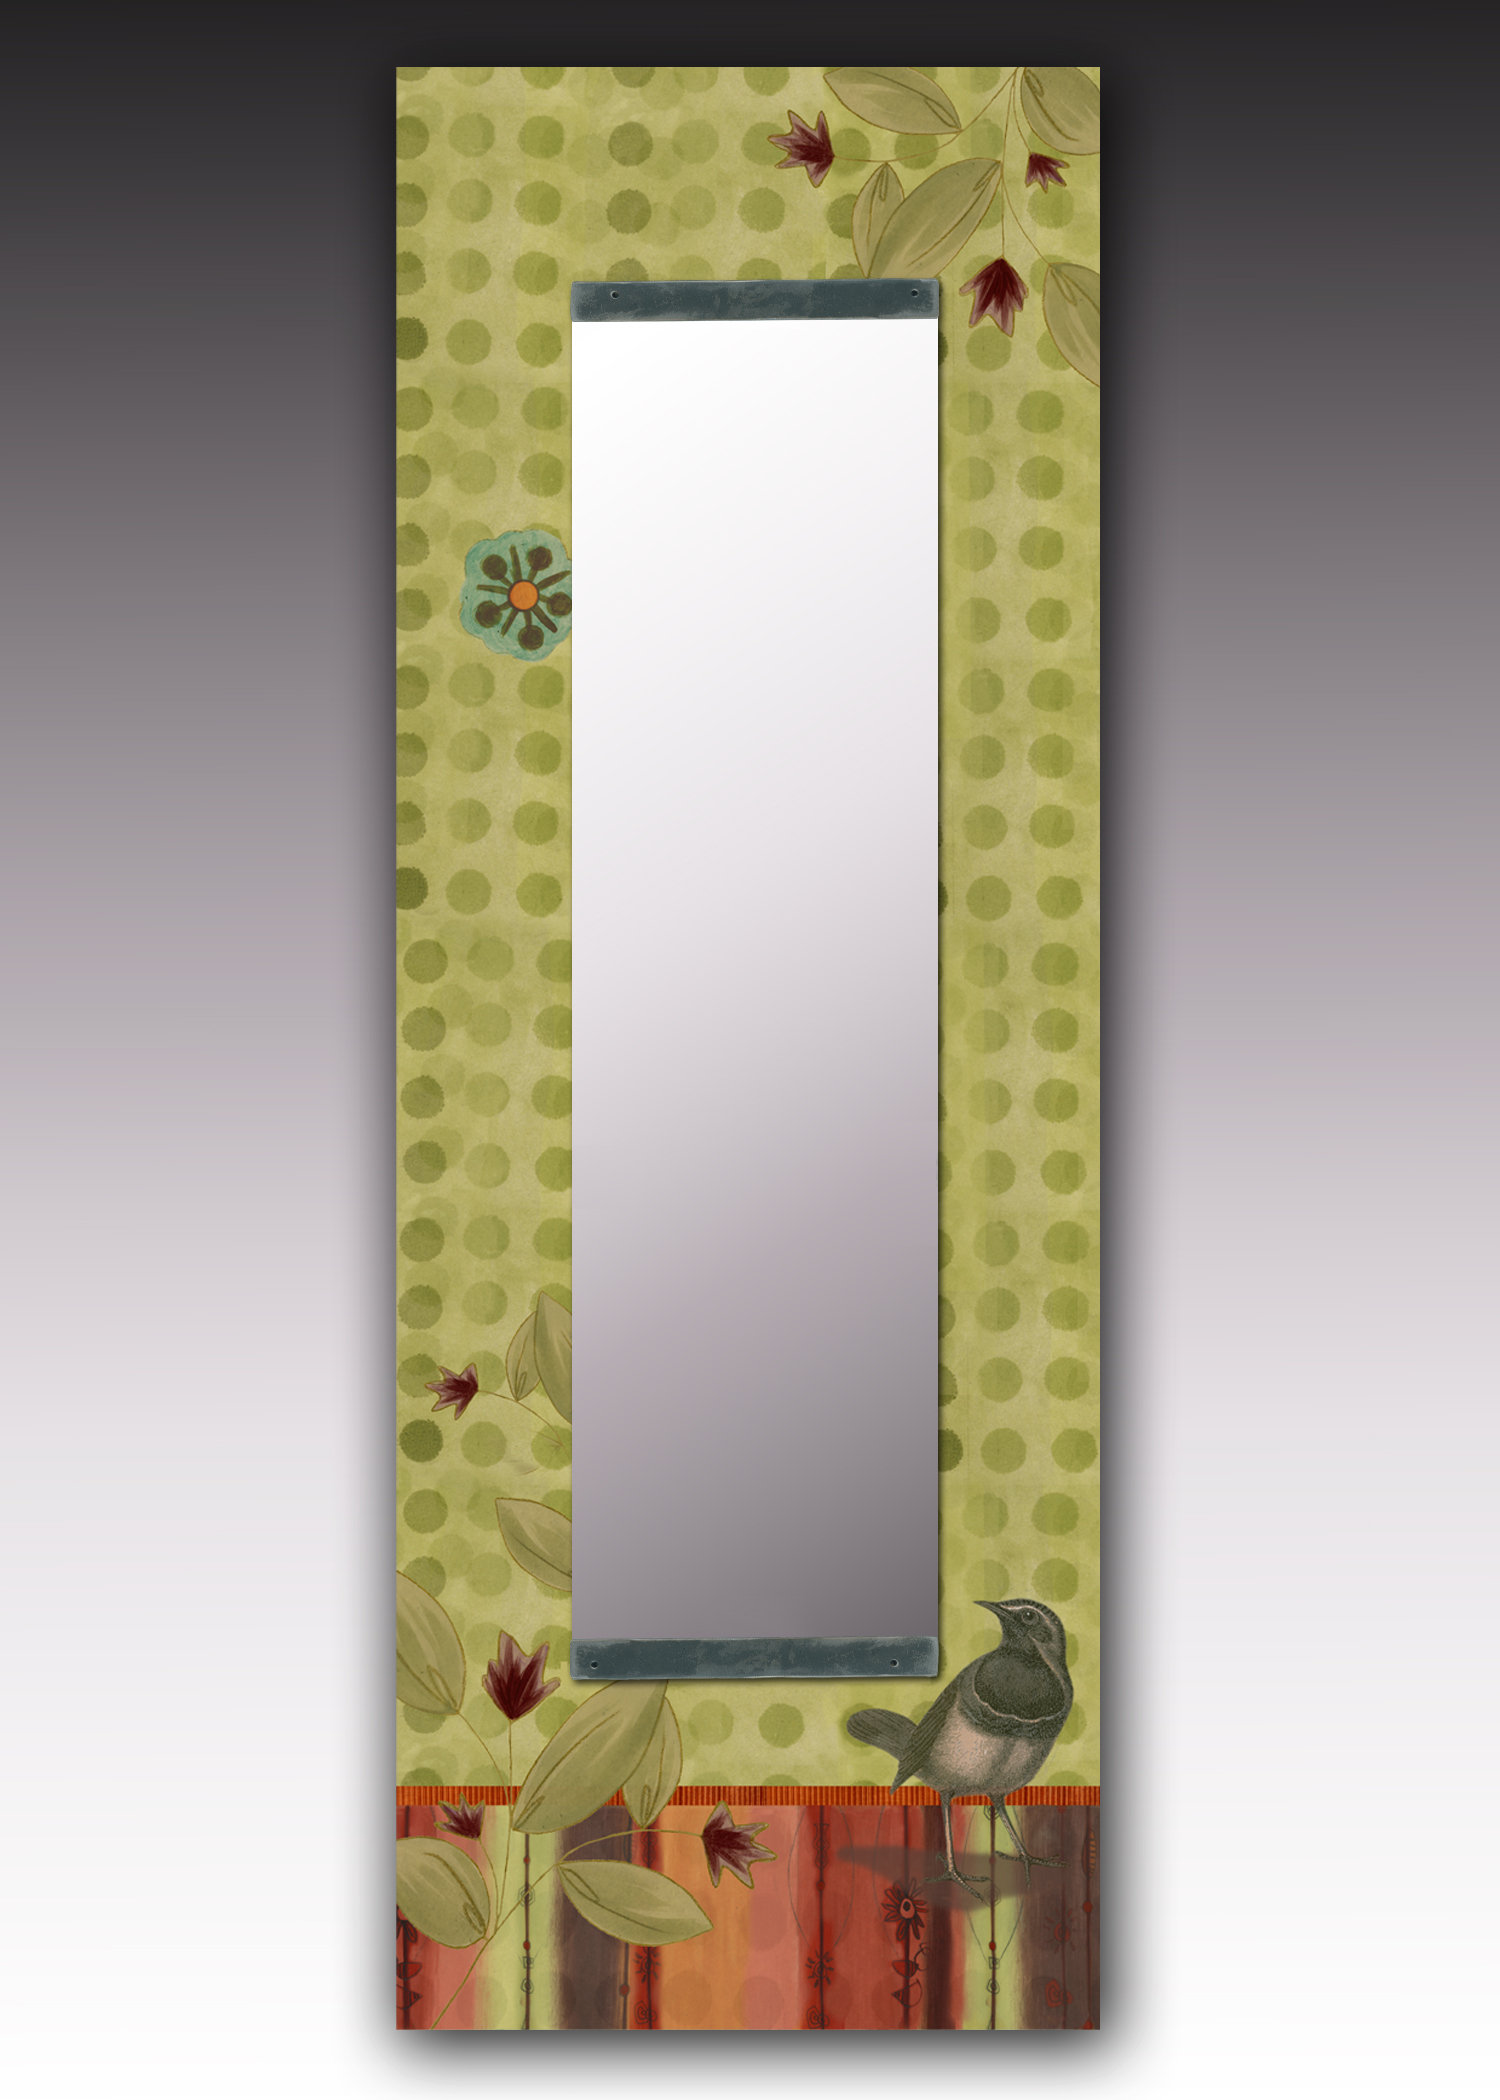 Bird in Lymon Wall Mirror by Janna Ugone and Justin Thomas (Mixed-Media Mirror)